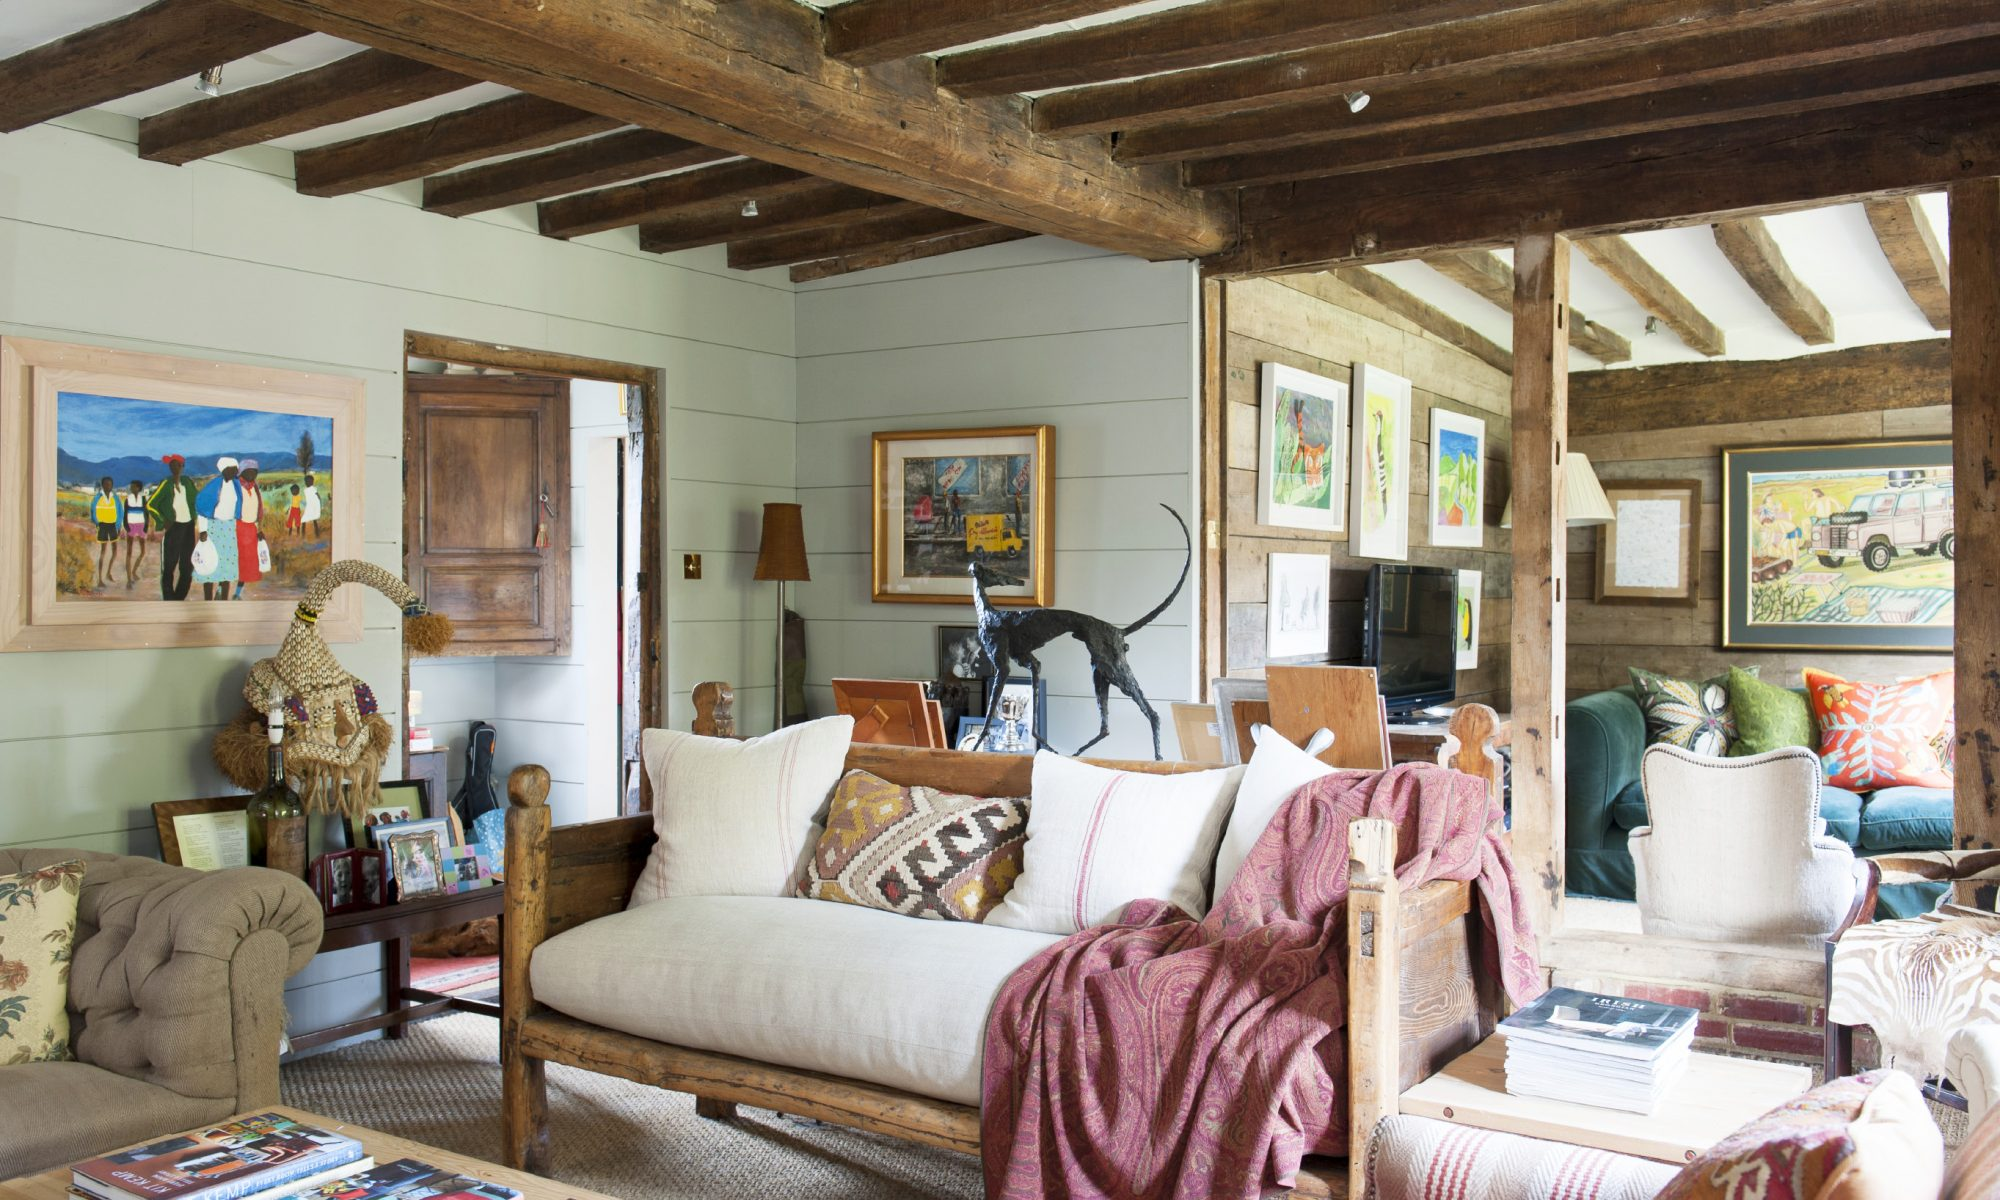 Through her inventive and unique approach to interior design, Alexis Wylie has sensitively updated her ancient farmhouse to create a quirky, yet organised, family space